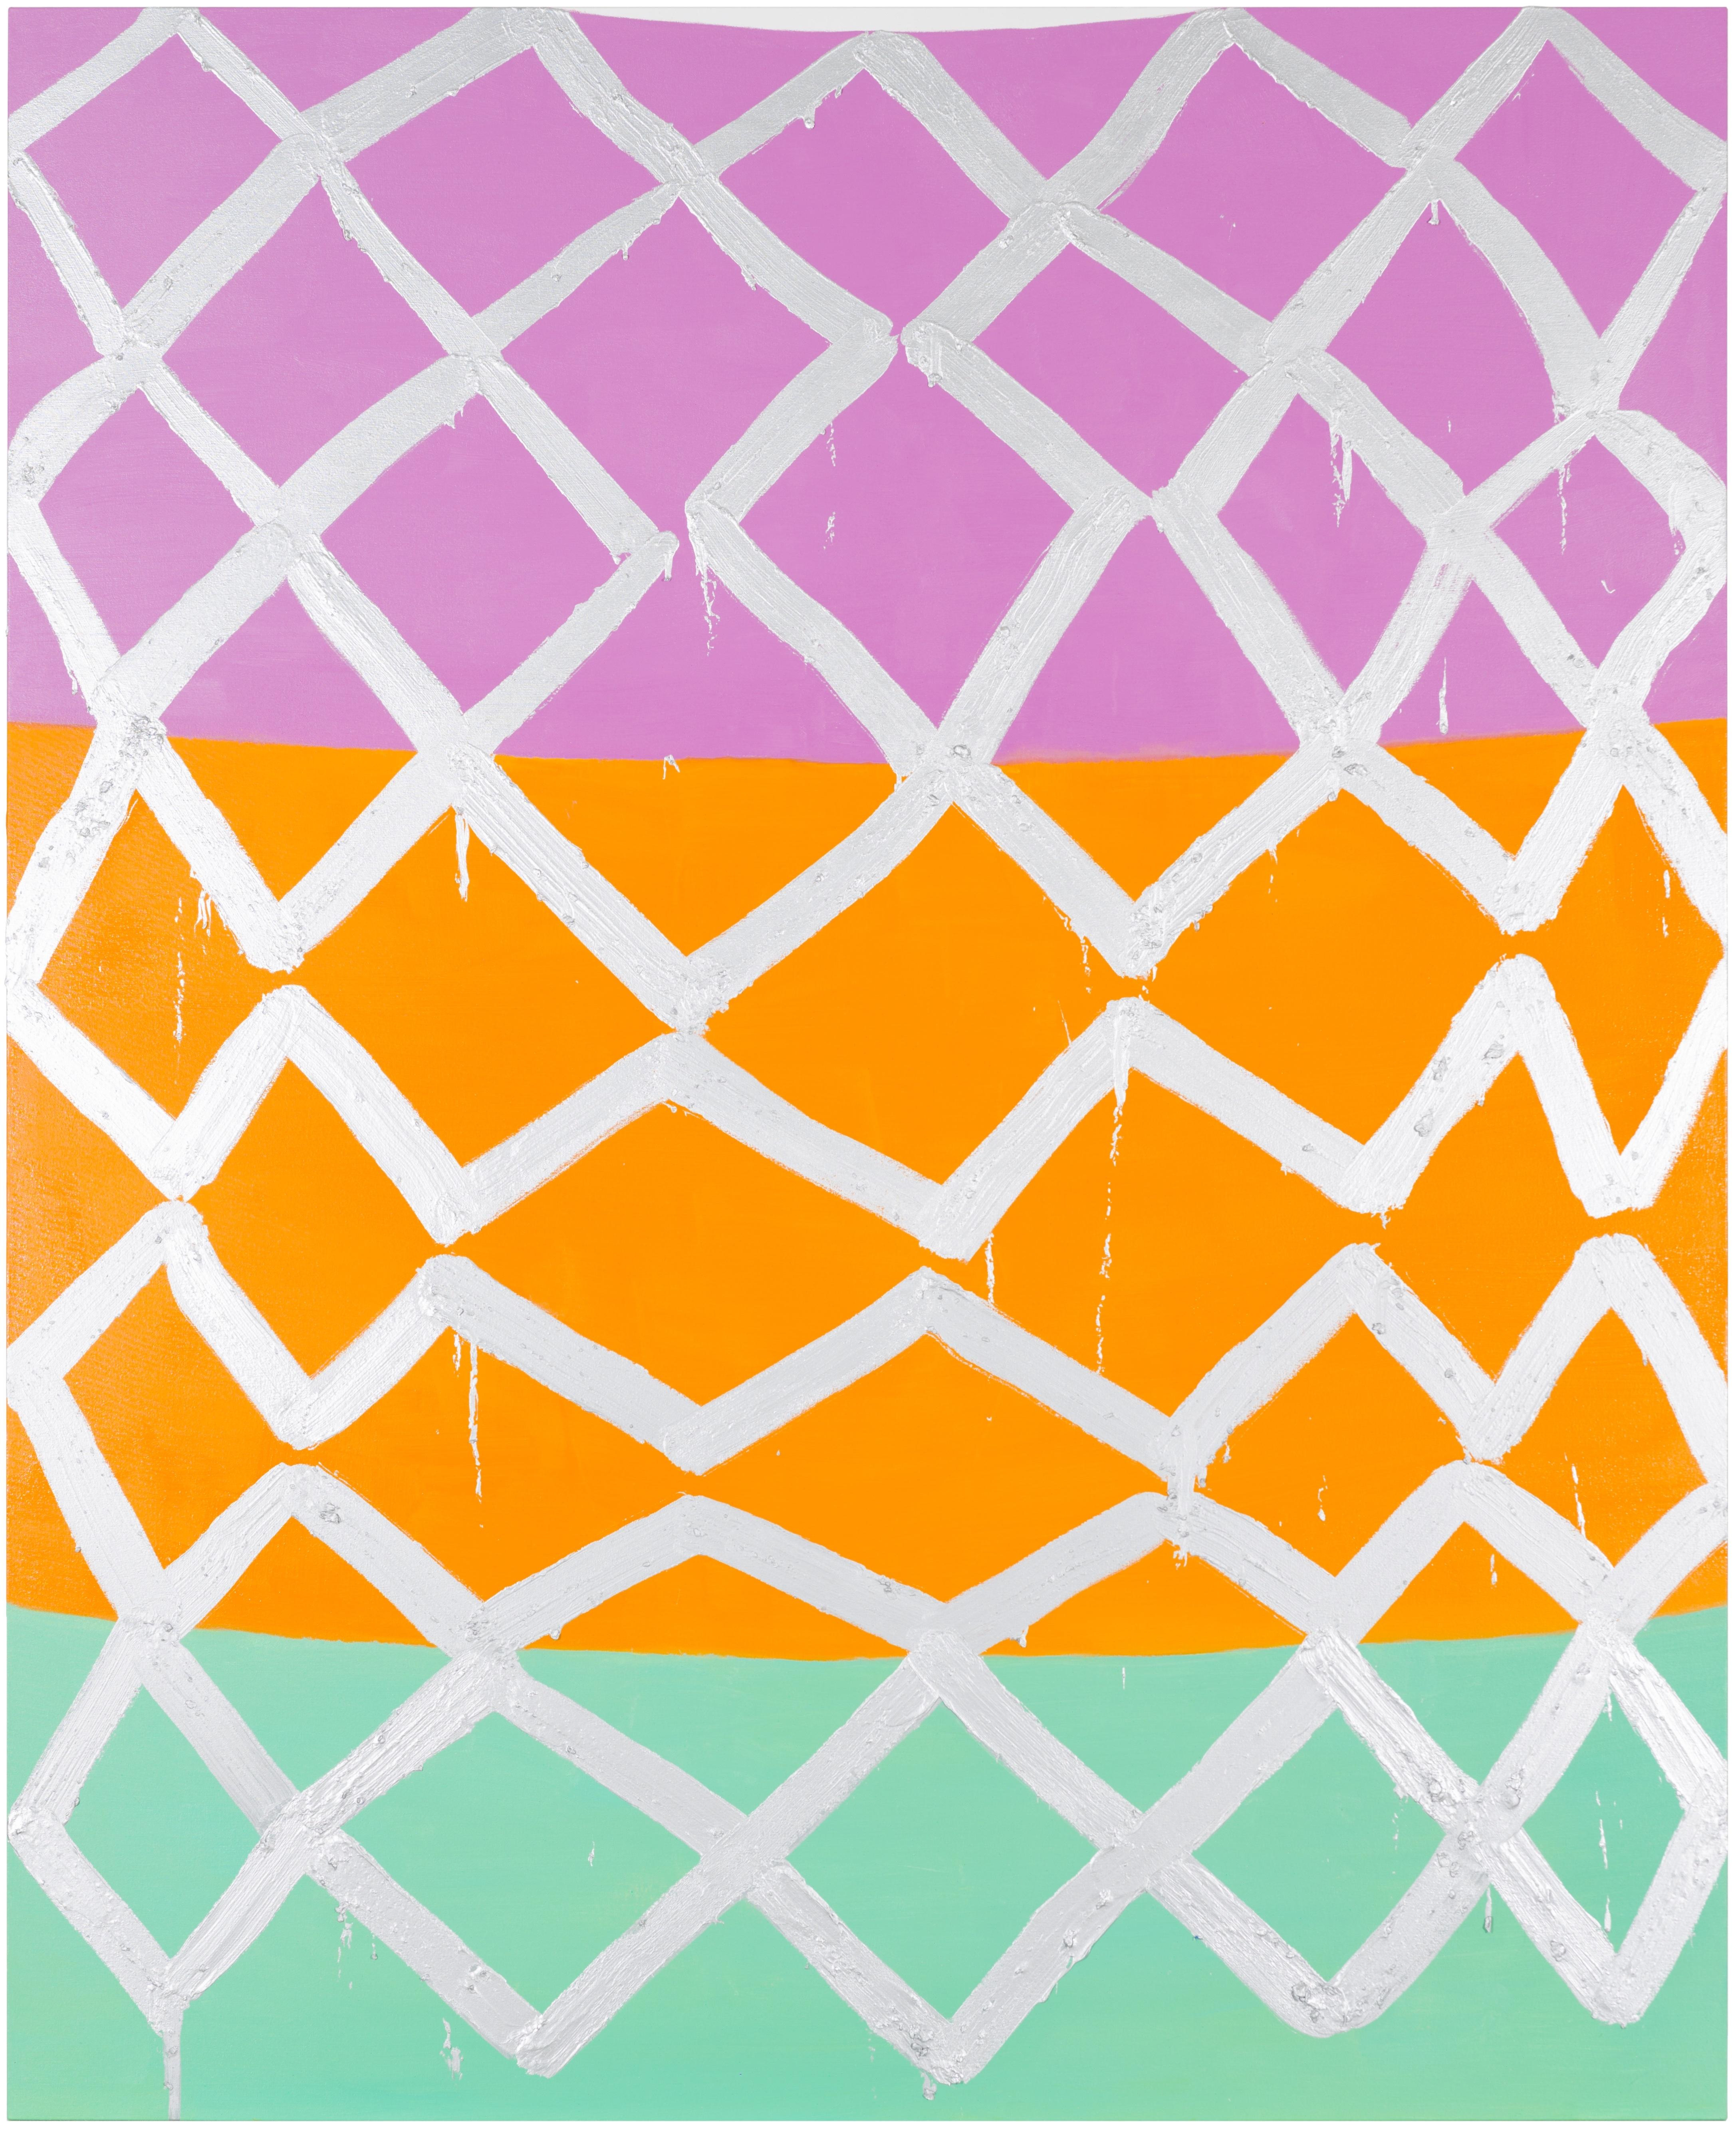 A triangular grid of irregular white lines is painted over three vertically stacked fields of flat color. From top to bottom, the color fields are lilac, orange, and sea-foam green.